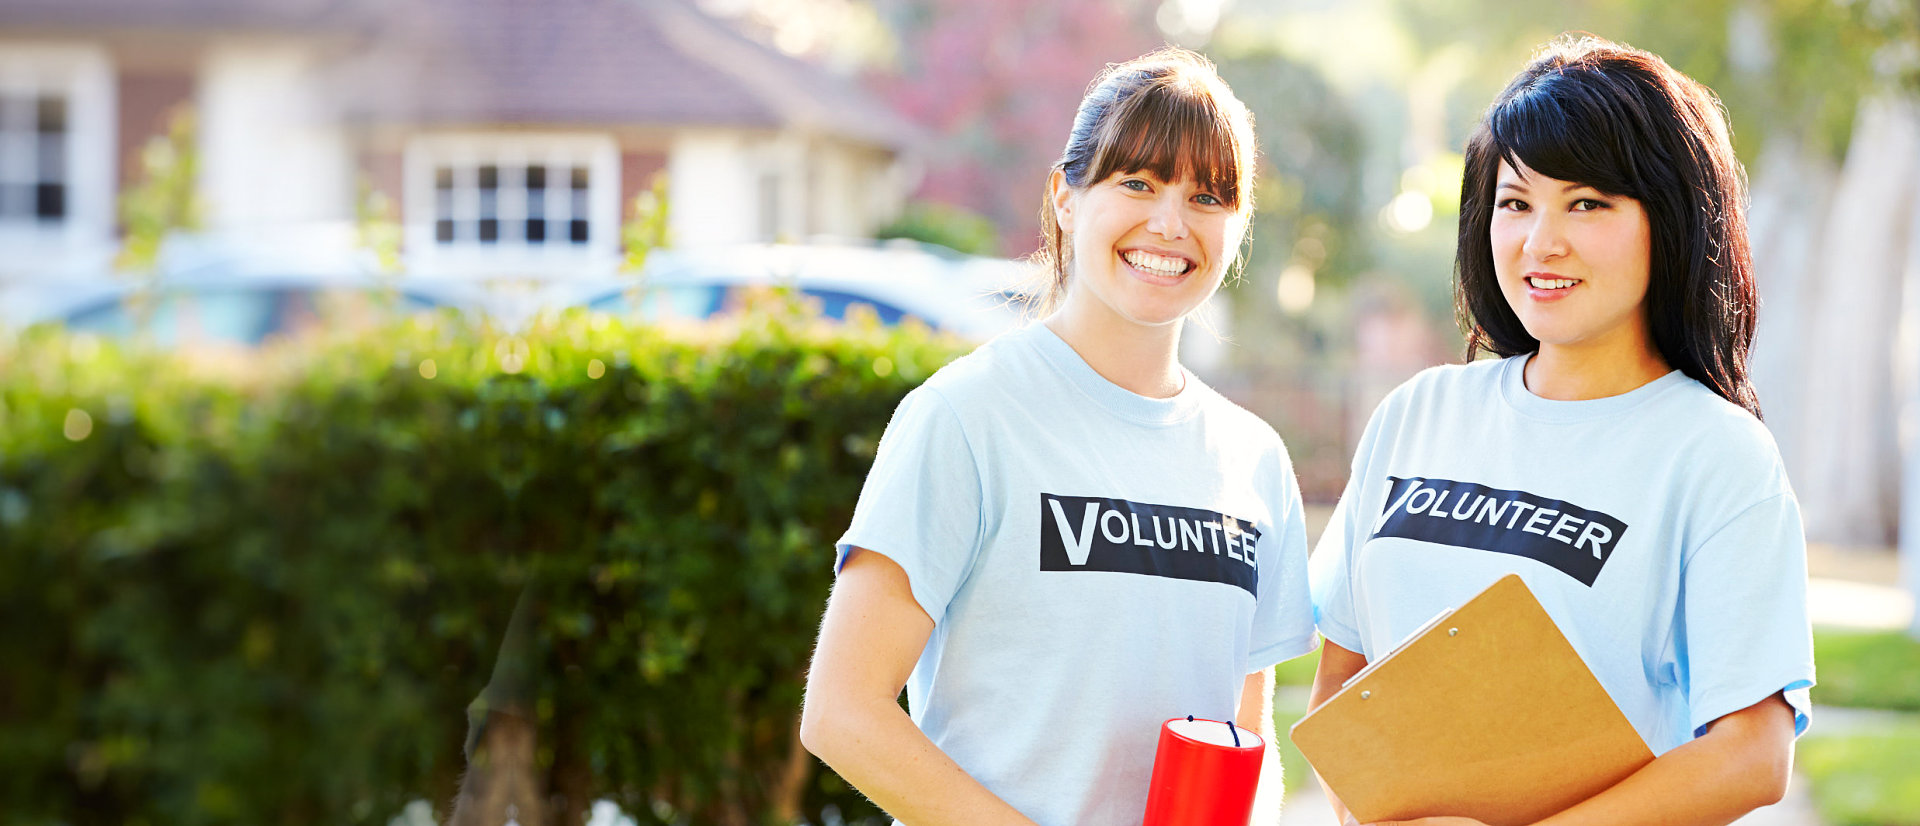 teenager volunteers smiling